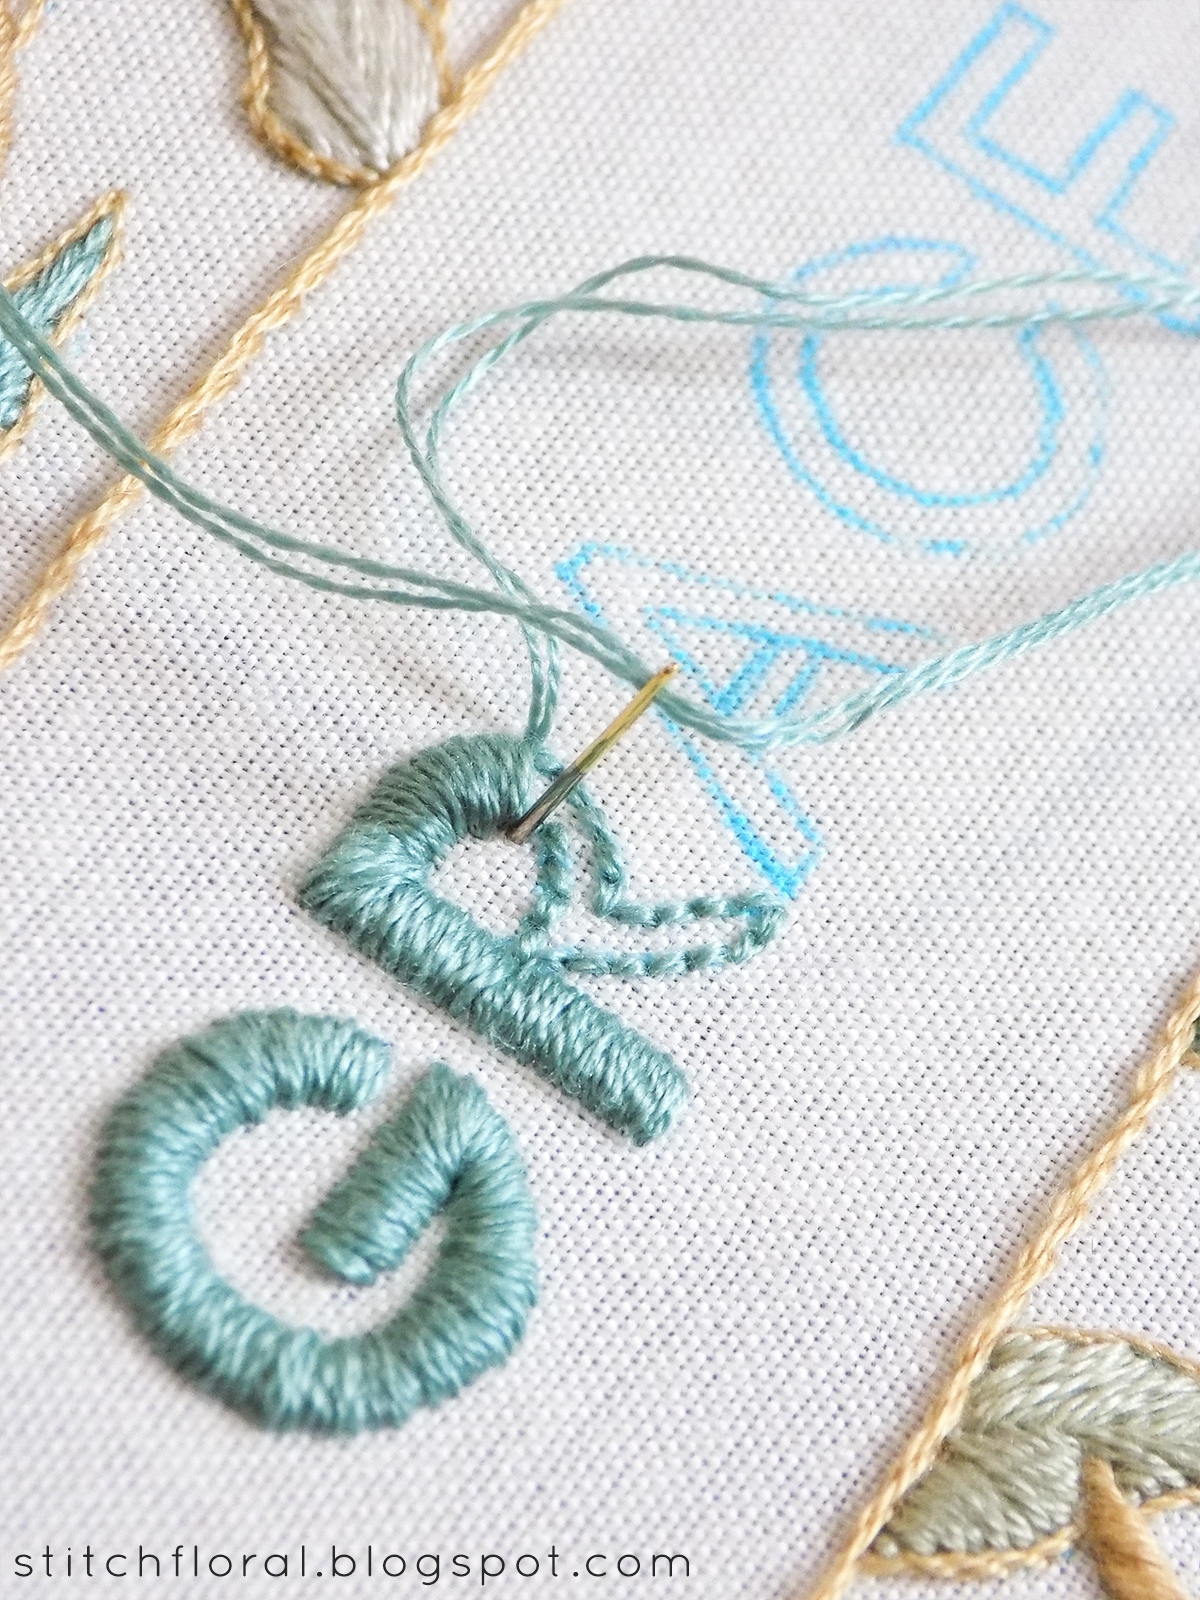 Embroidery For Beginners Free Patterns Grace Free Embroidery Pattern Stitch Floral